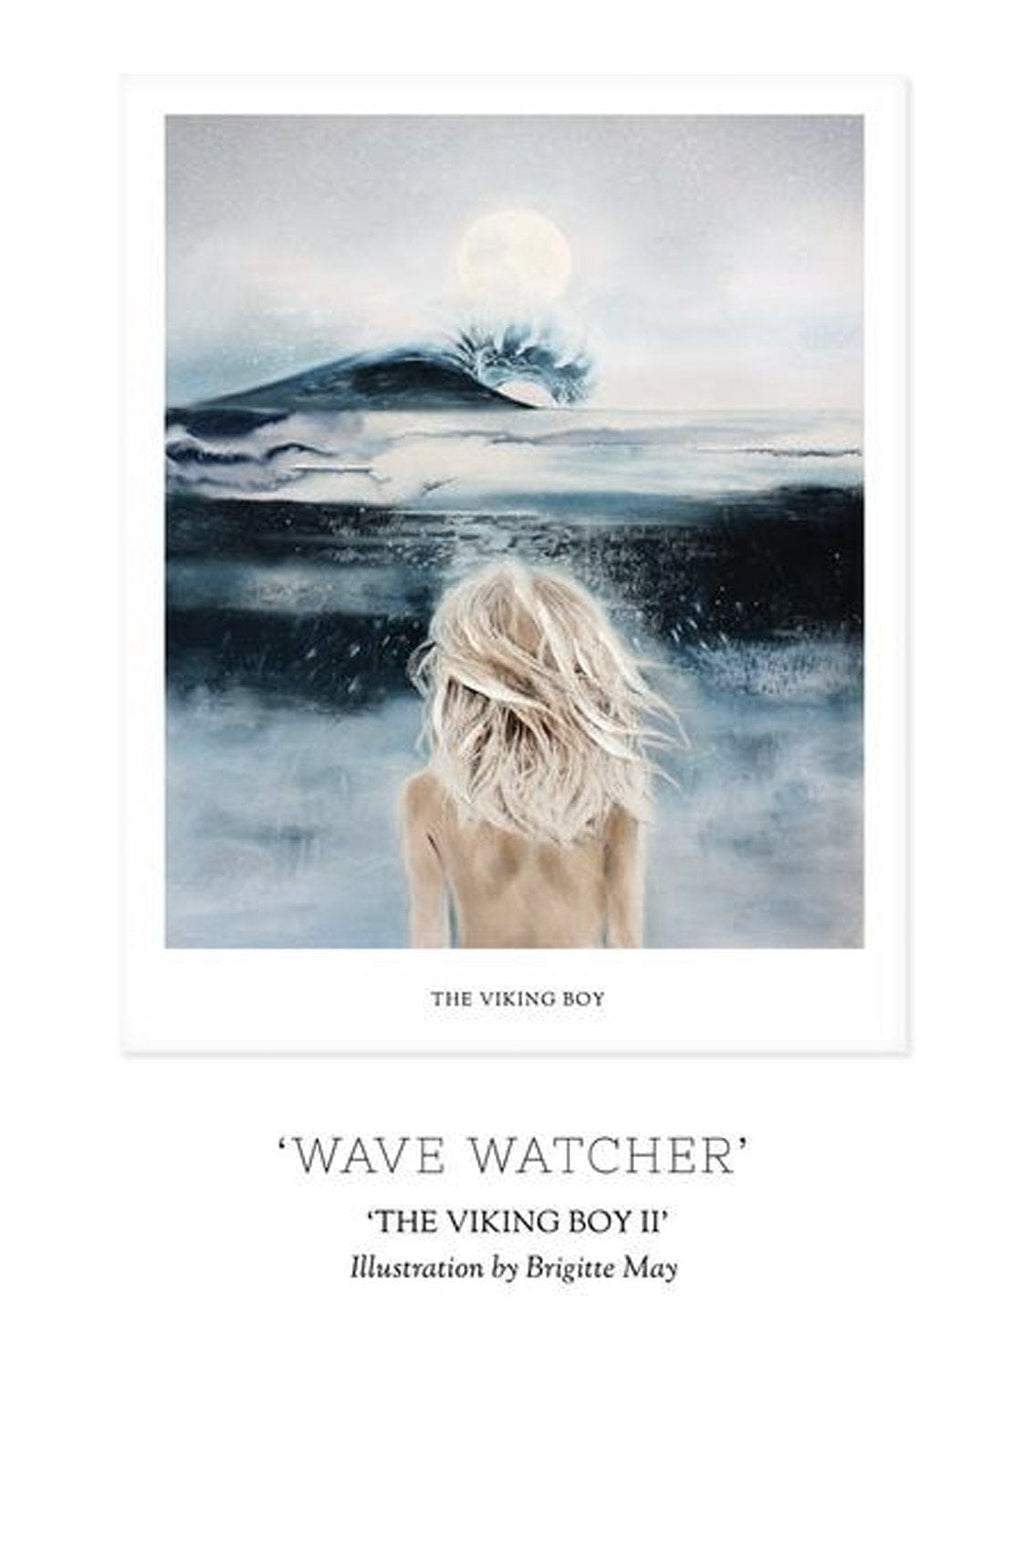 THE VIKING BOY CHAPTER II - 'WAVE WATCHER'